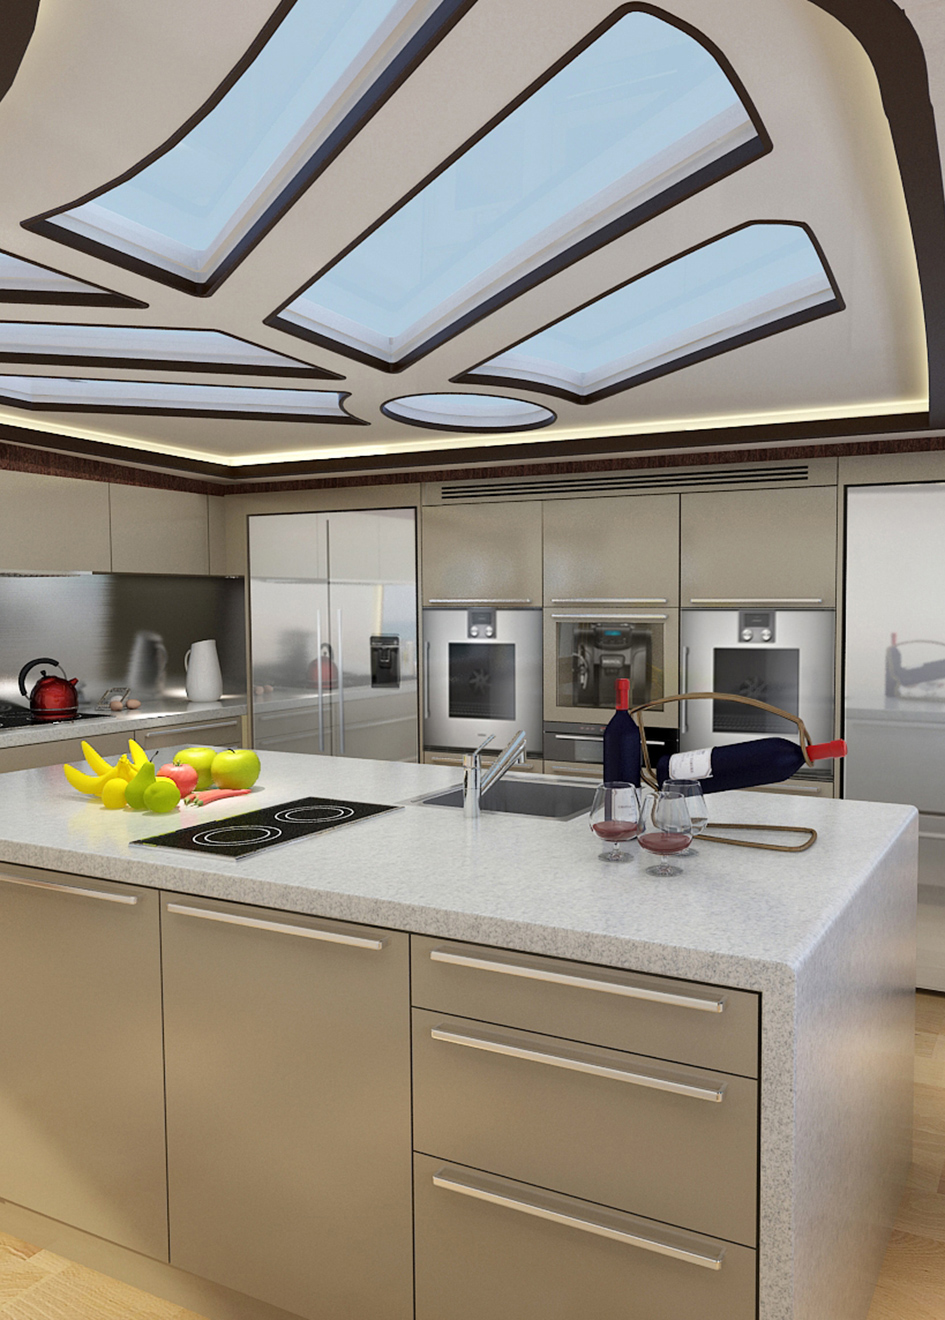 the-galley-of-the-heysea-108-asteria-yacht